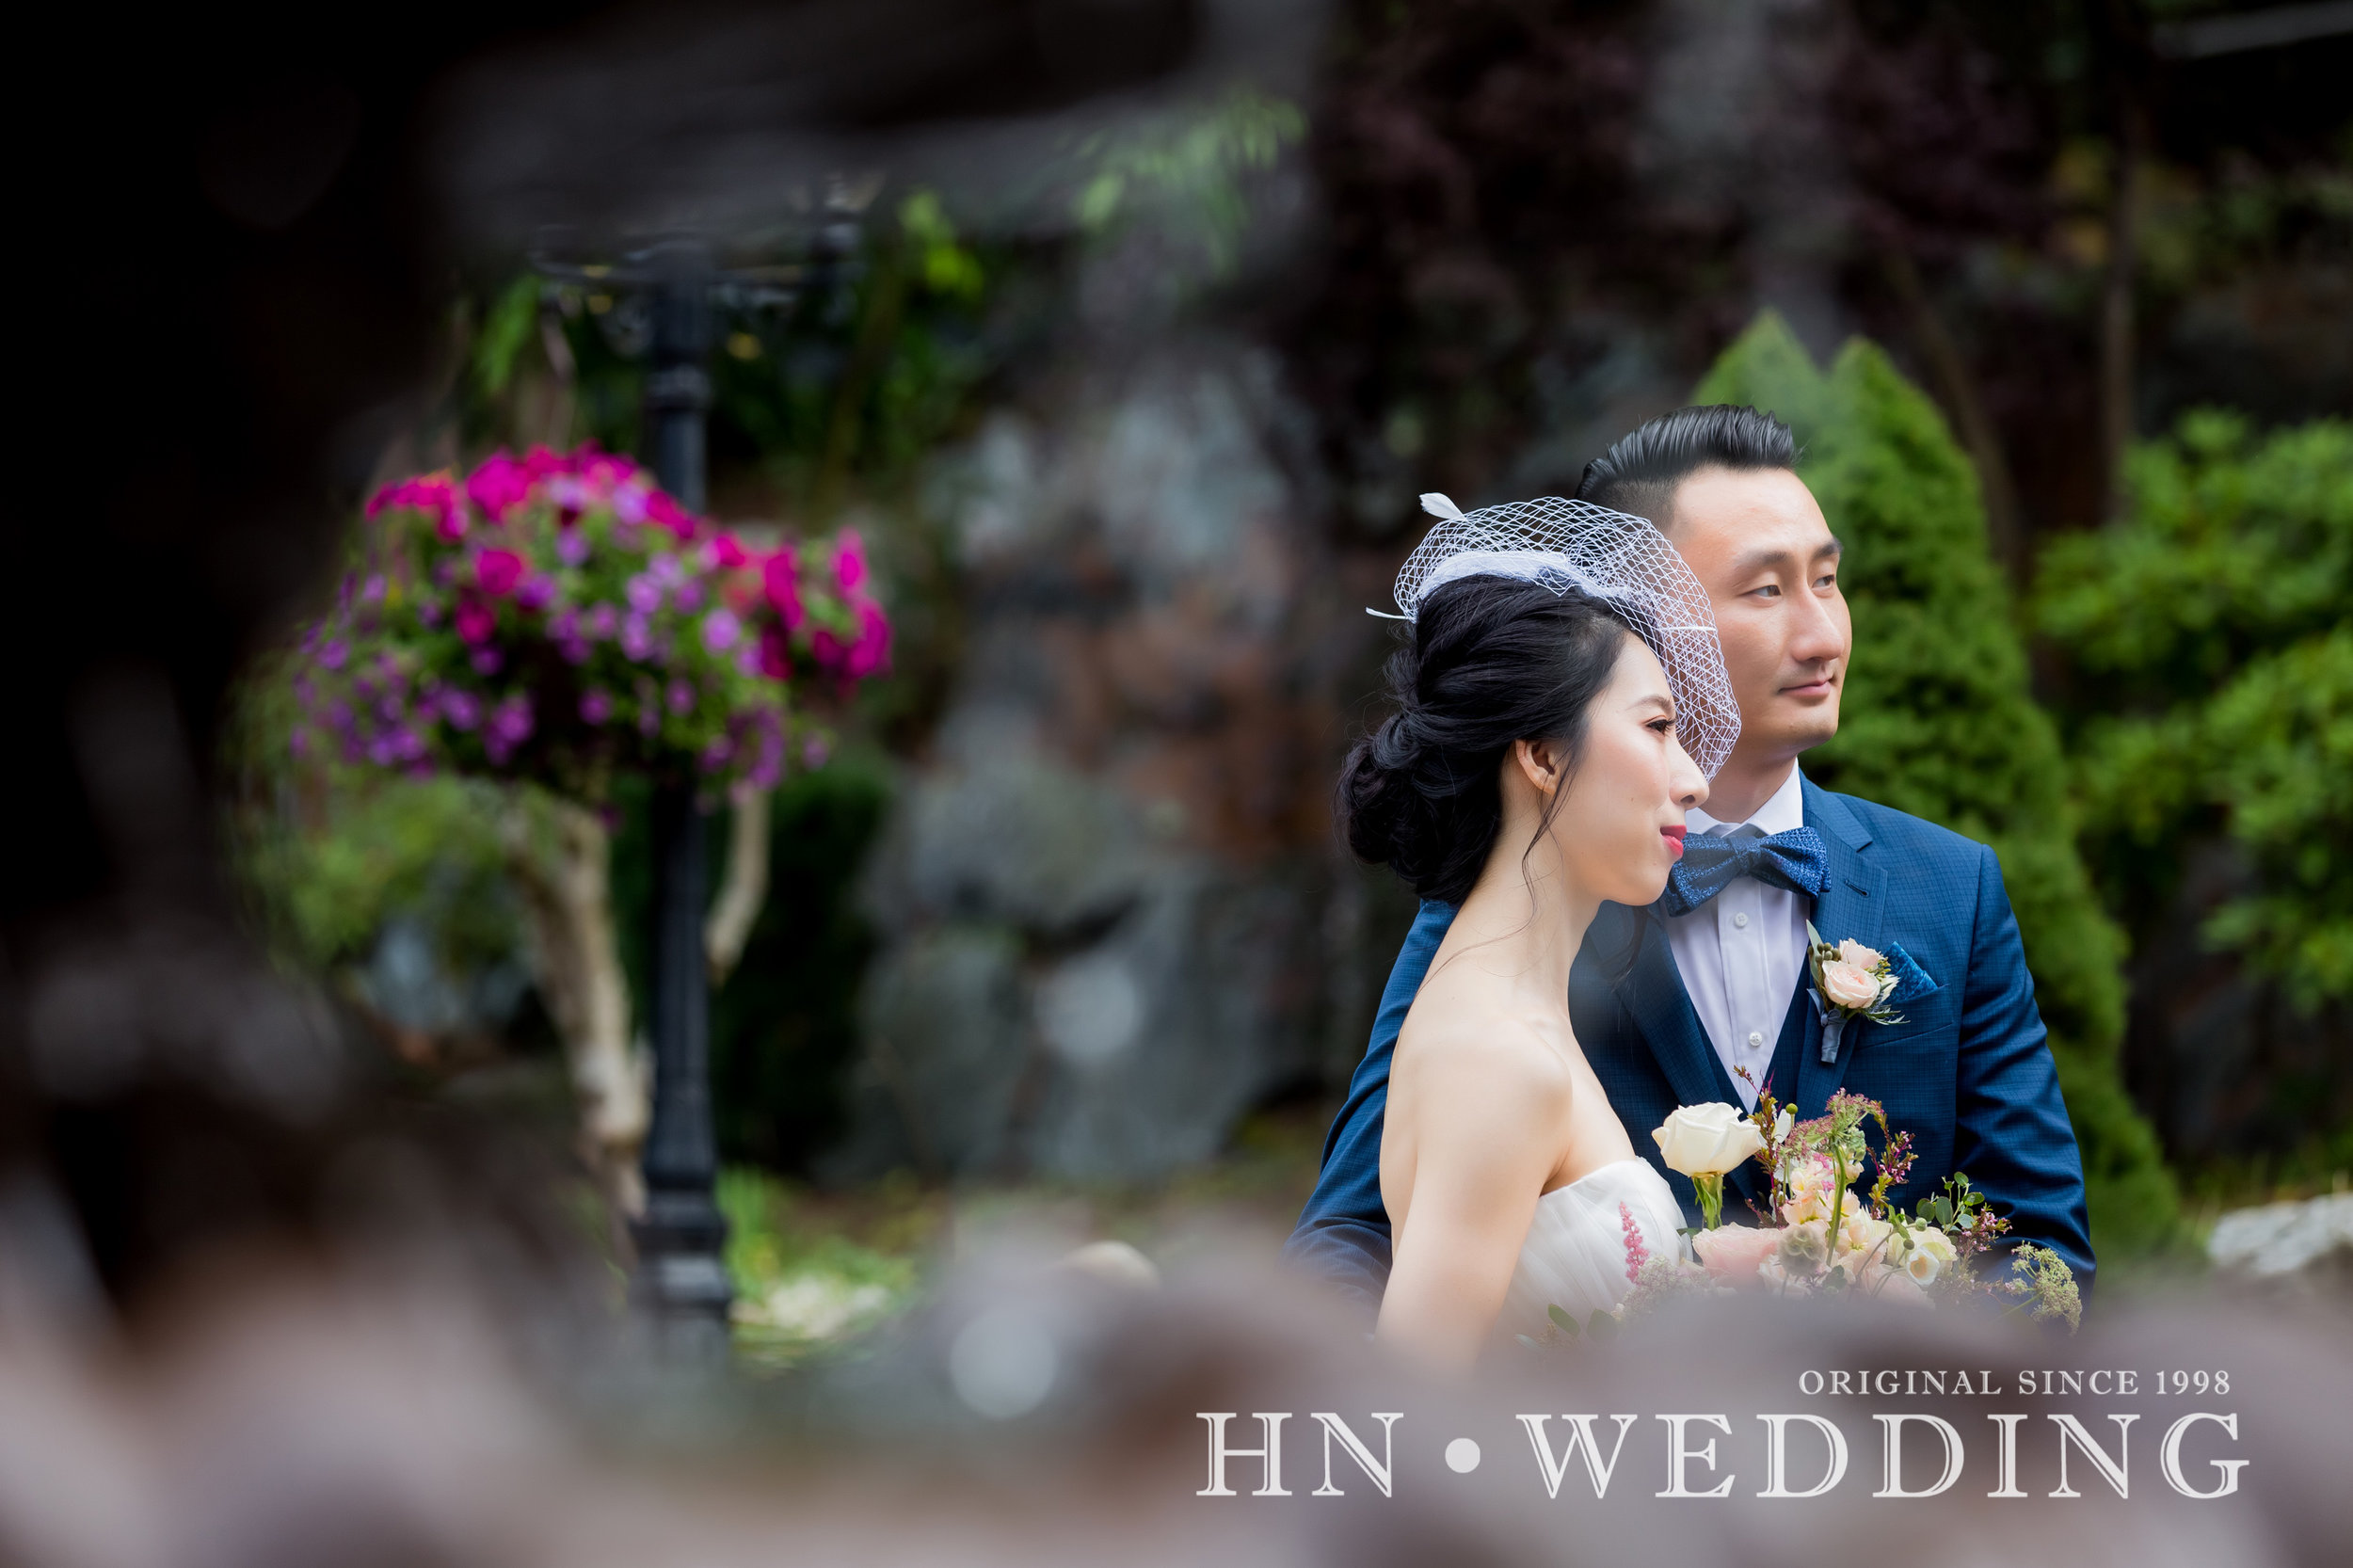 hnweddingweddingday20180830-100.jpg